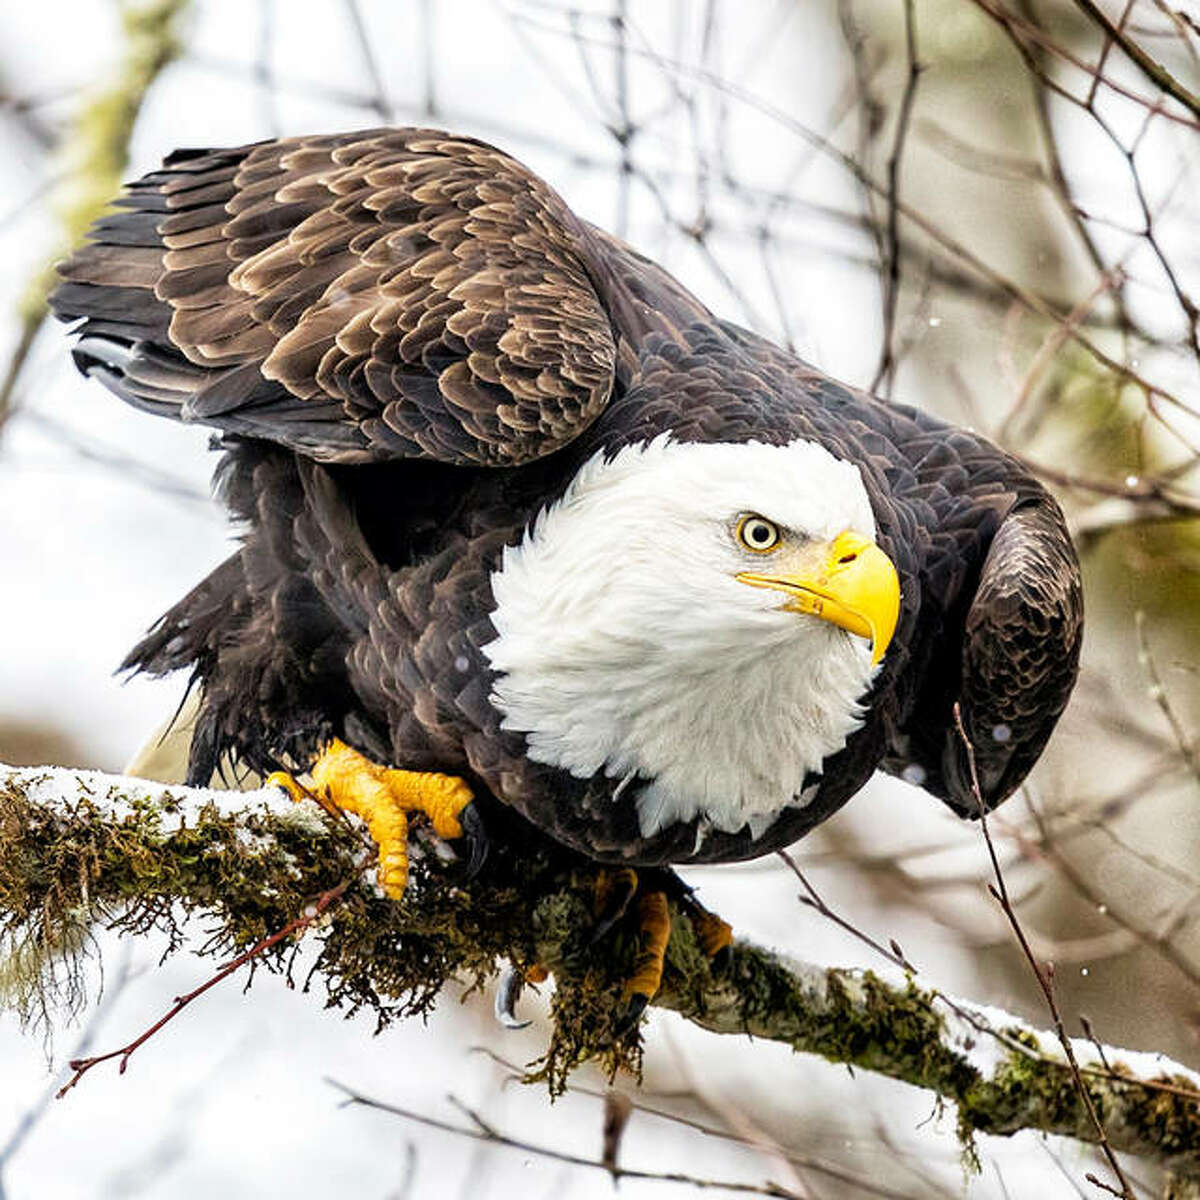 While eagles are more around during the winter, the Audubon Center at Riverlands offers a chance to hike near the Great Rivers and see the native species of birds from around the Riverlands. The Migratory Bird Sanctuary center is open 8 a.m. to 4 p.m. on Tuesdays through Saturdays and the sanctuary is open from sunrise to sunset.